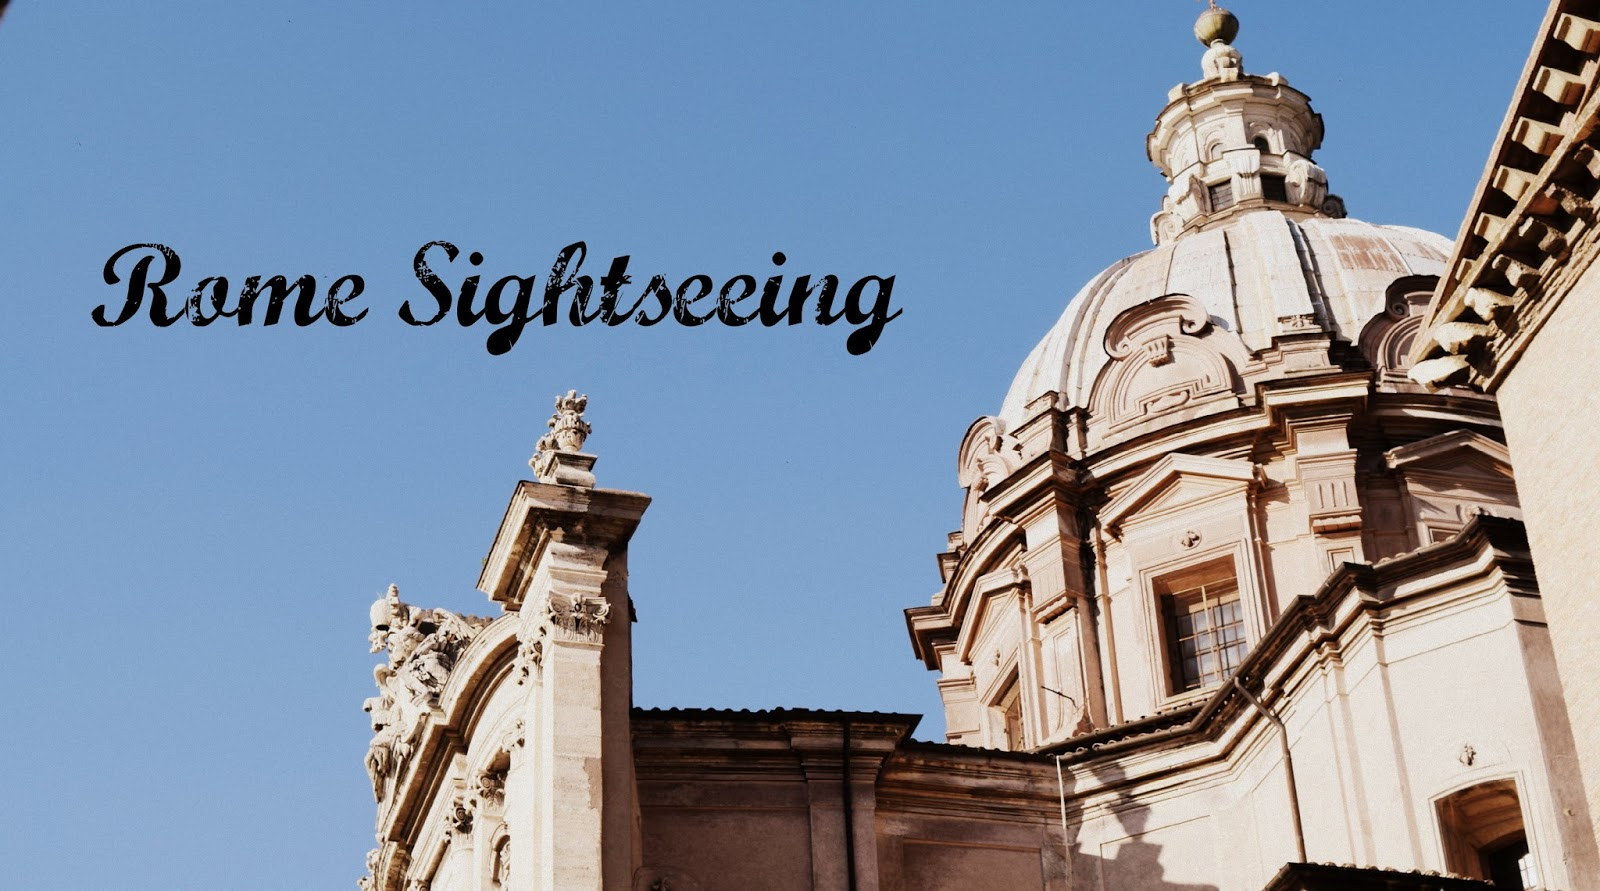 rome sightseeing travel blog post